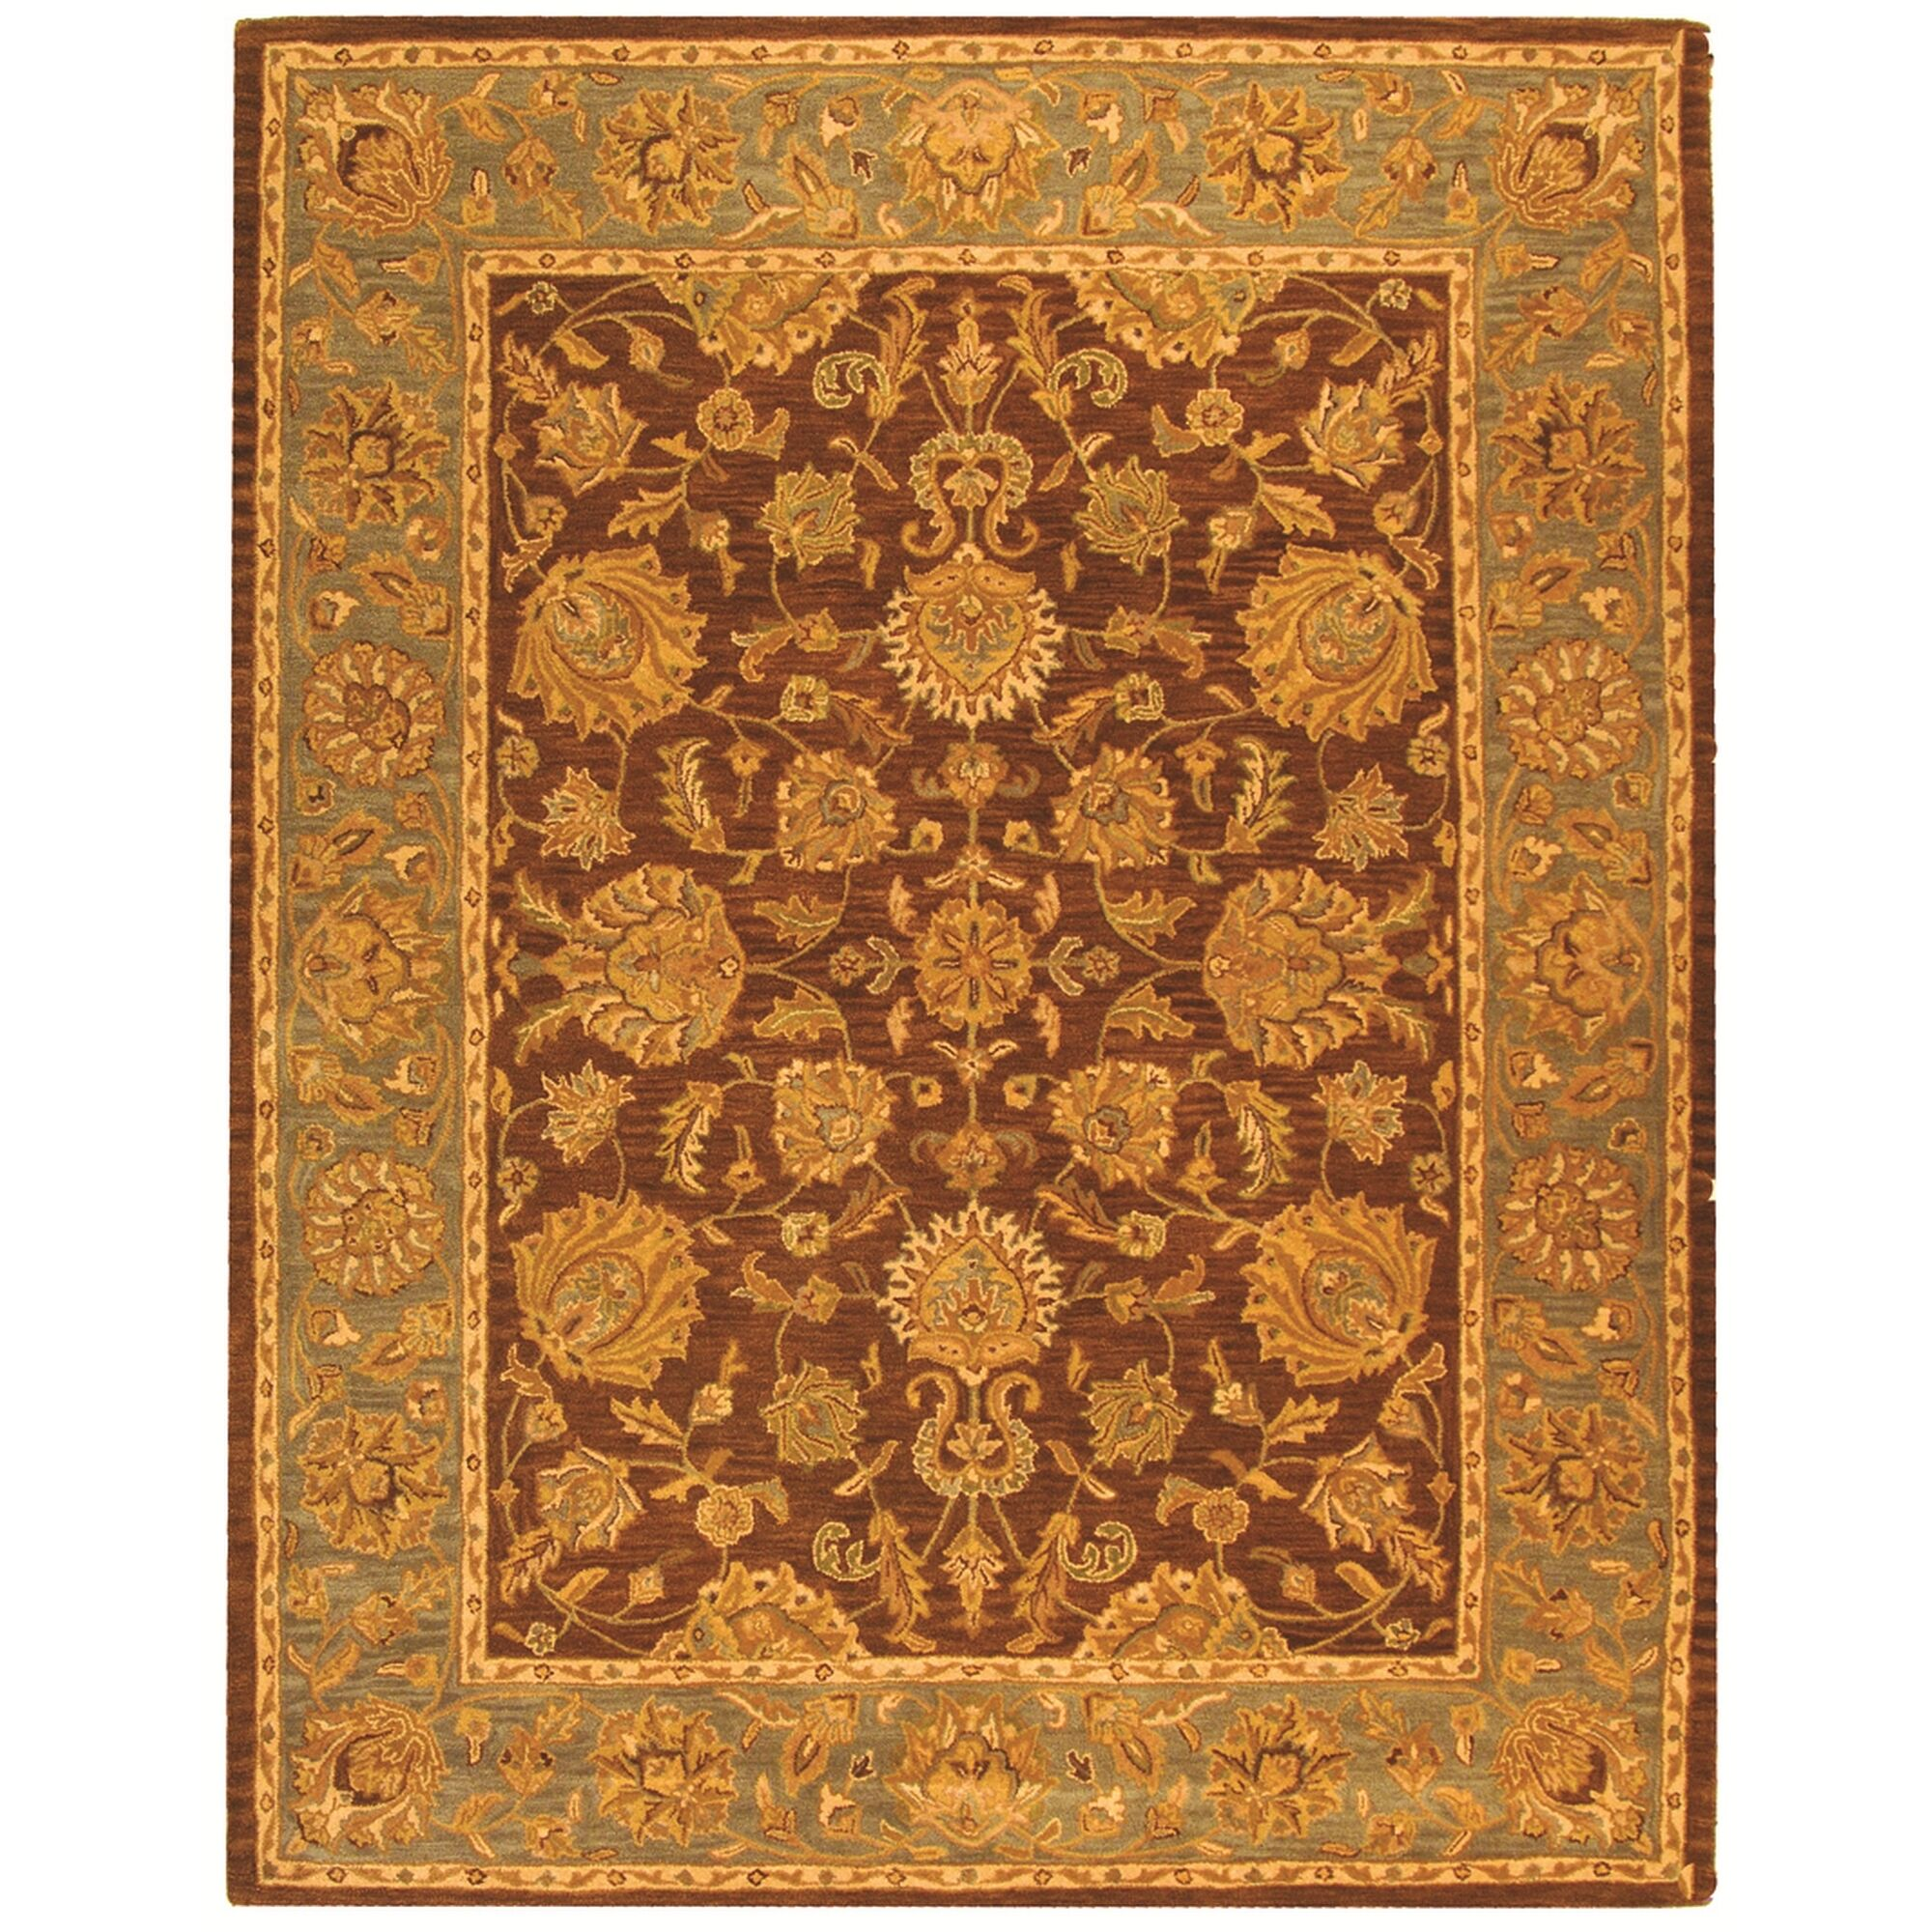 Cranmore Gold & Brown Area Rug Rug Size: Rectangle 6' x 9'